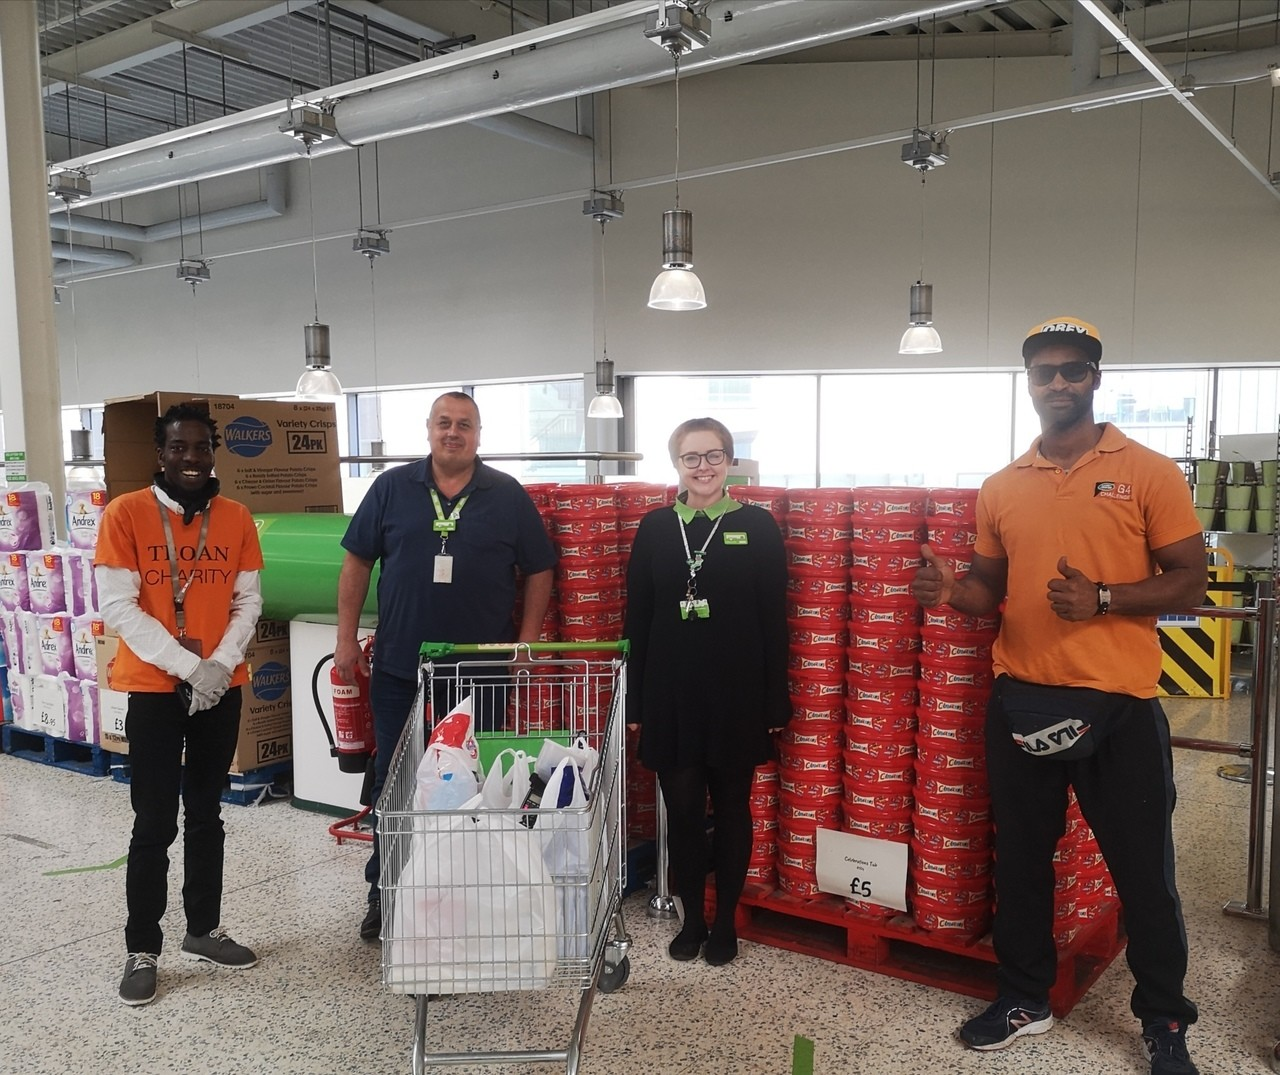 Donation for Troan Charity volunteers 💚 | Asda Barking